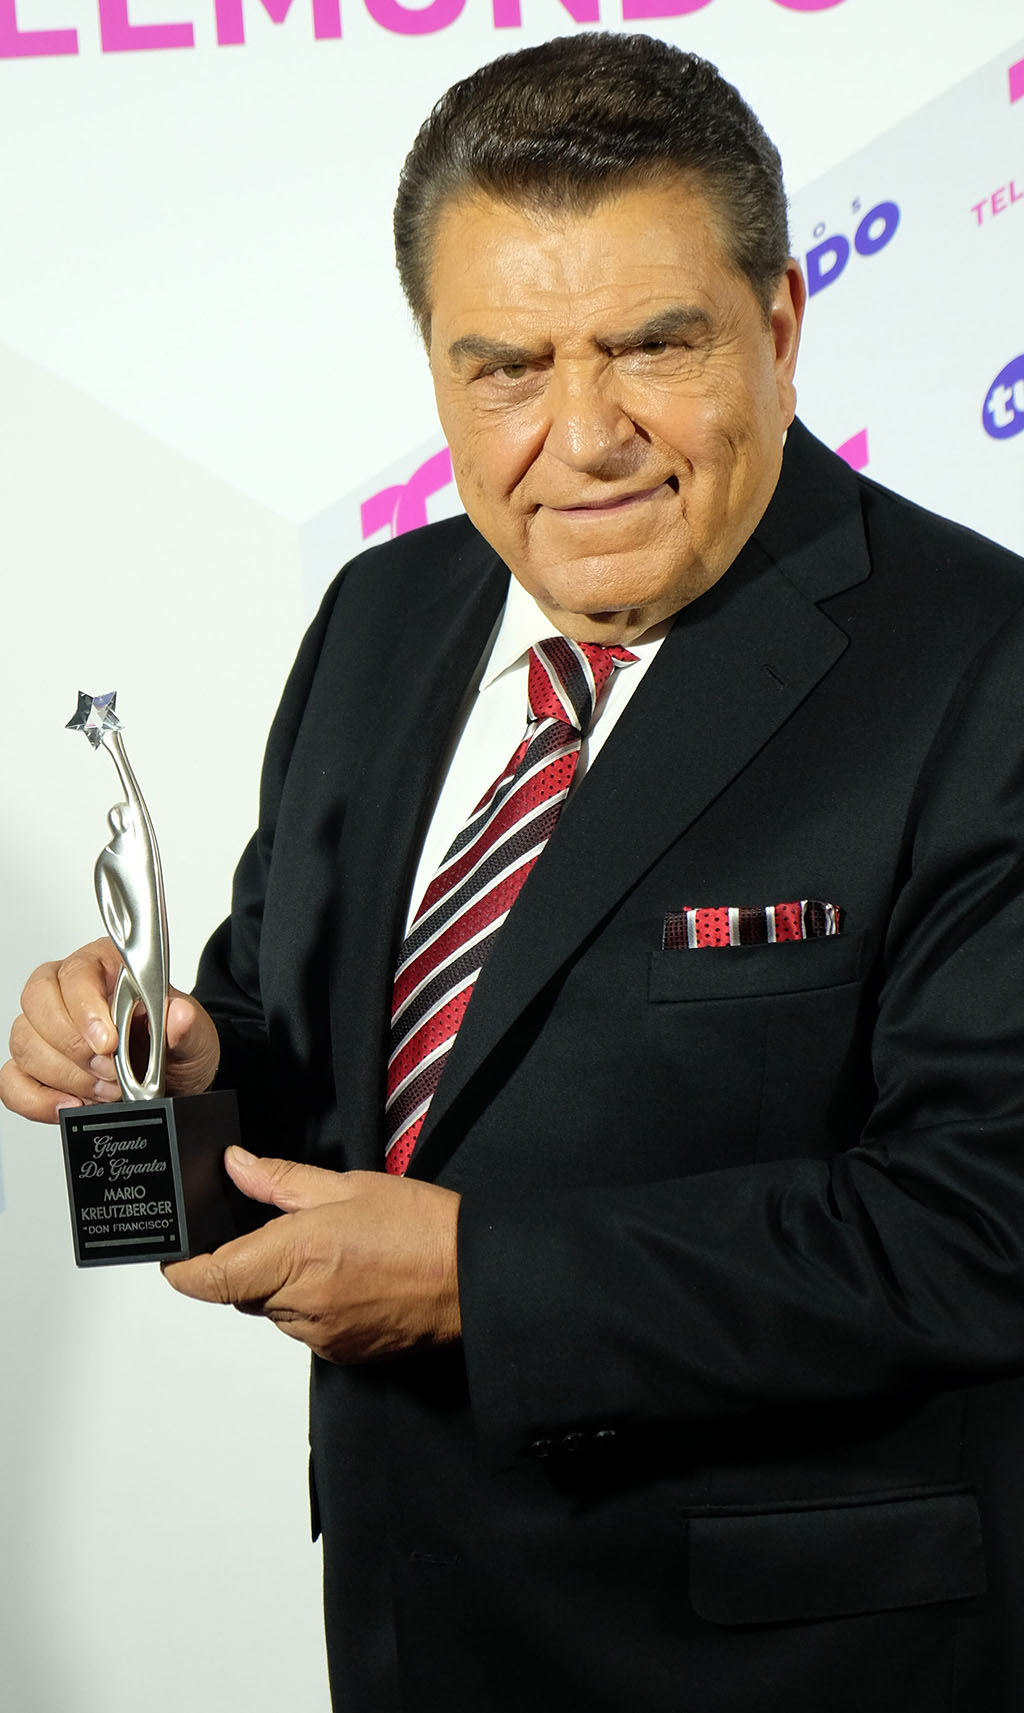 DON FRANCISCO. EFE